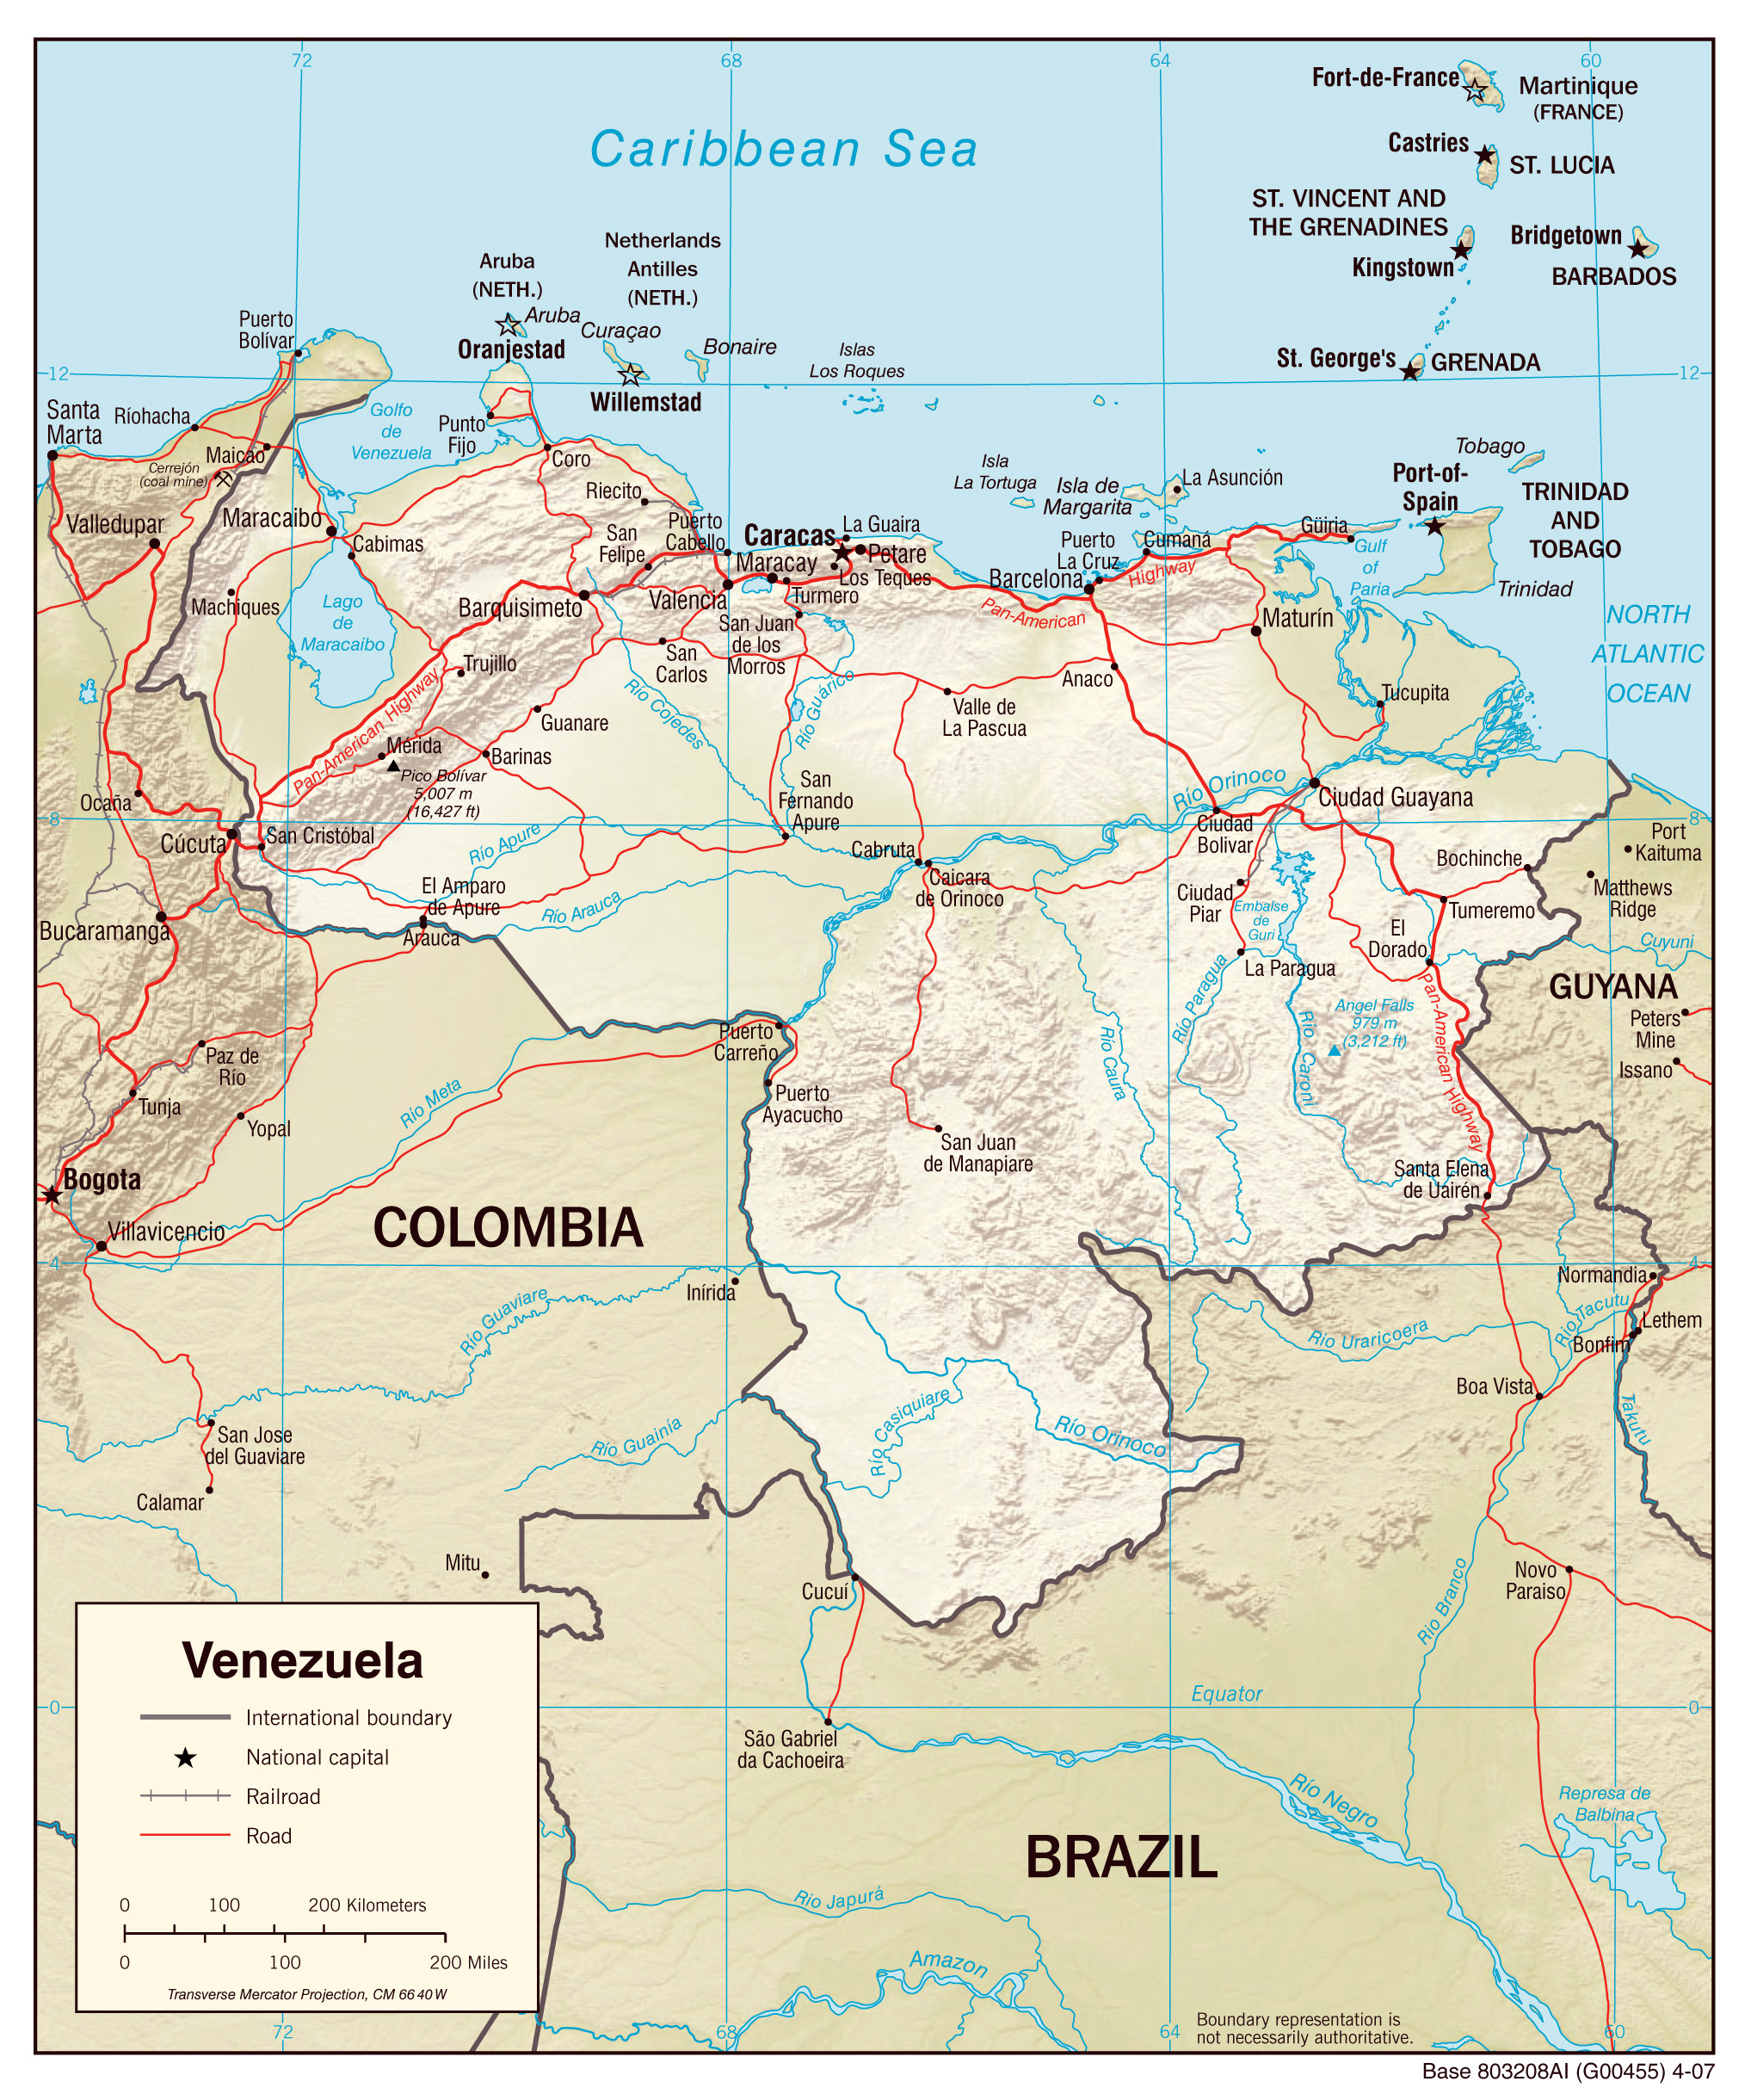 Large Scale Map Of France.Large Scale Political Map Of Venezuela With Relief Roads And Cities